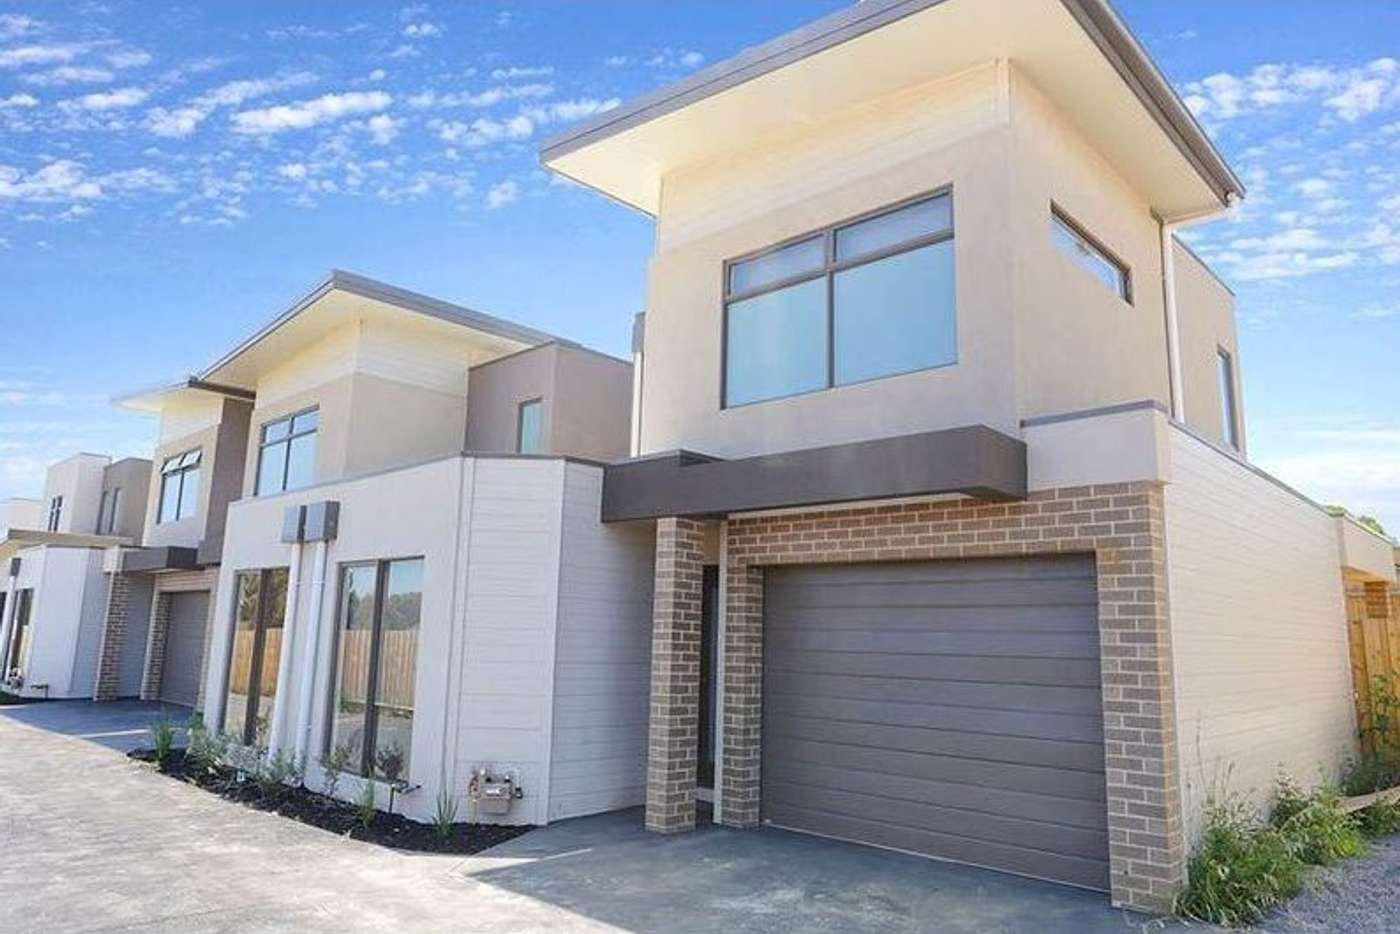 Main view of Homely townhouse listing, 4/27 McCormicks Road, Carrum Downs VIC 3201